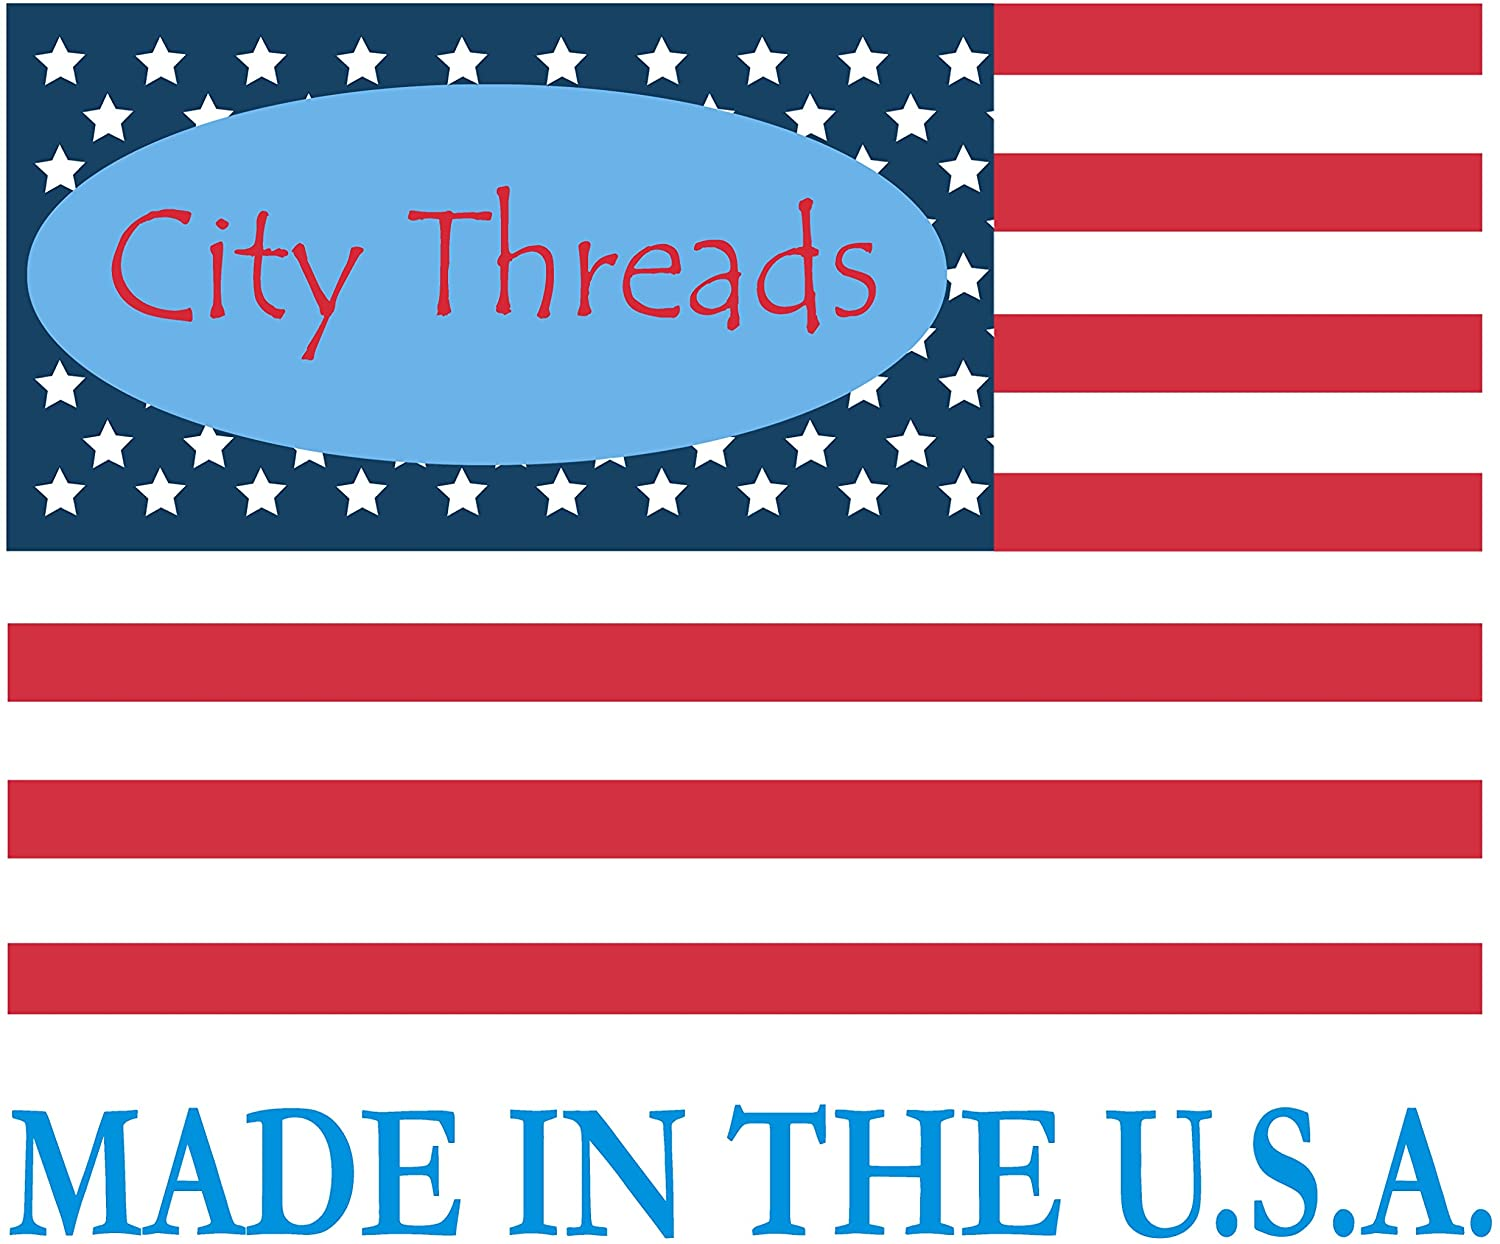 Made in USA City Threads Boys All Cotton Briefs Underwear 3-Pack for Sensitive Skin